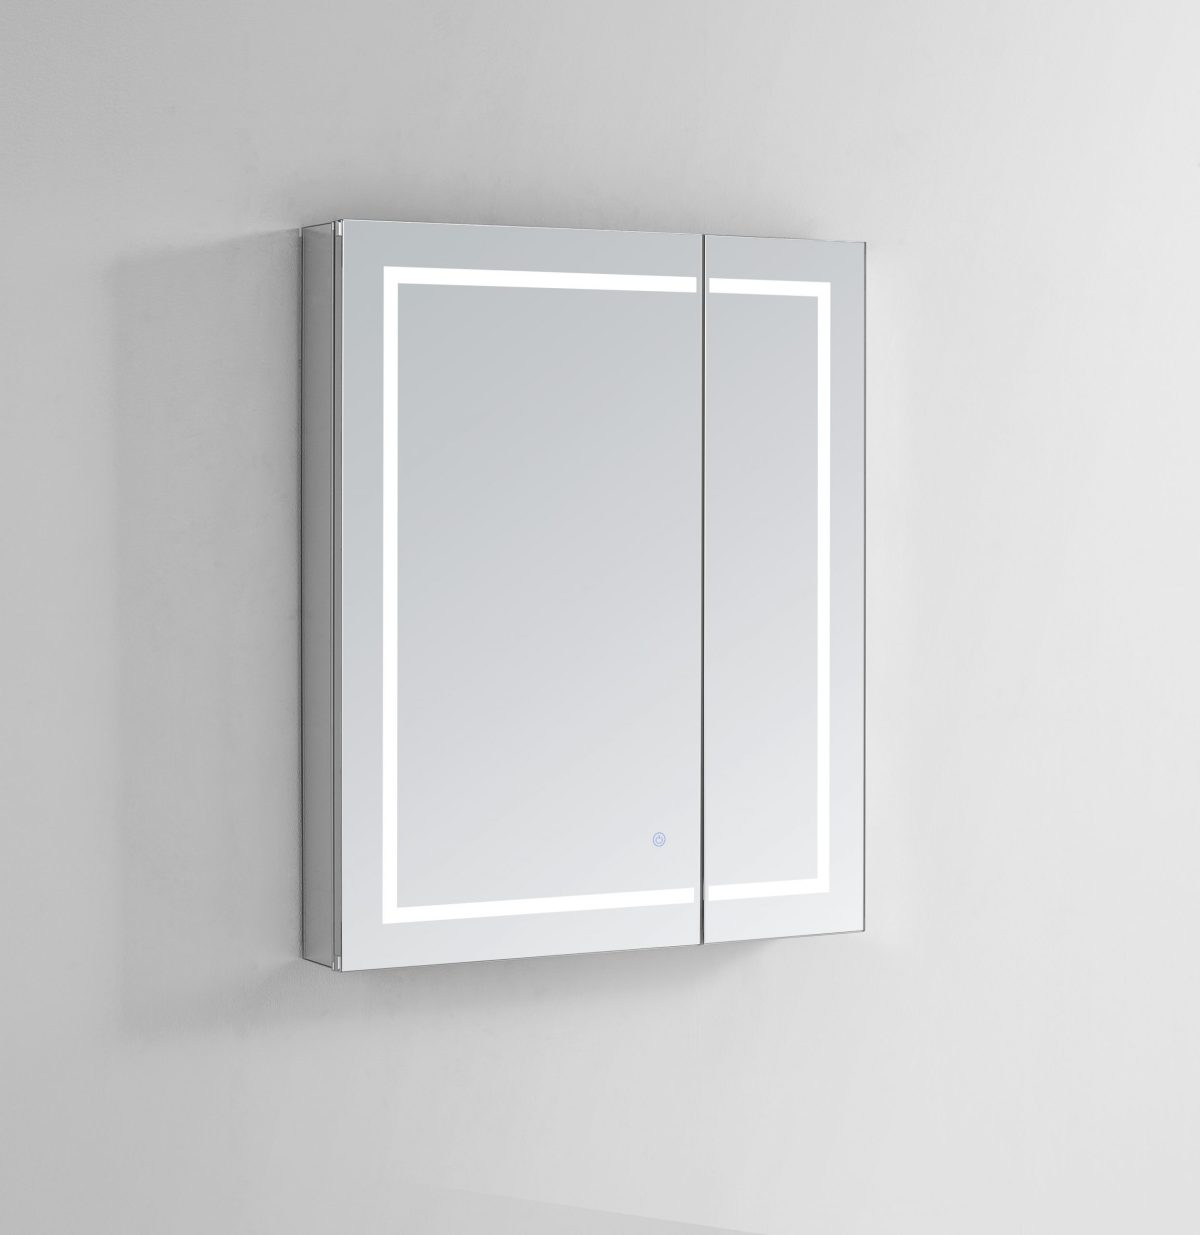 AQUADOM Royale Plus 36 inches x 30 inches LED Lighted Mirror Glass Medicine Cabinet for Bathroom